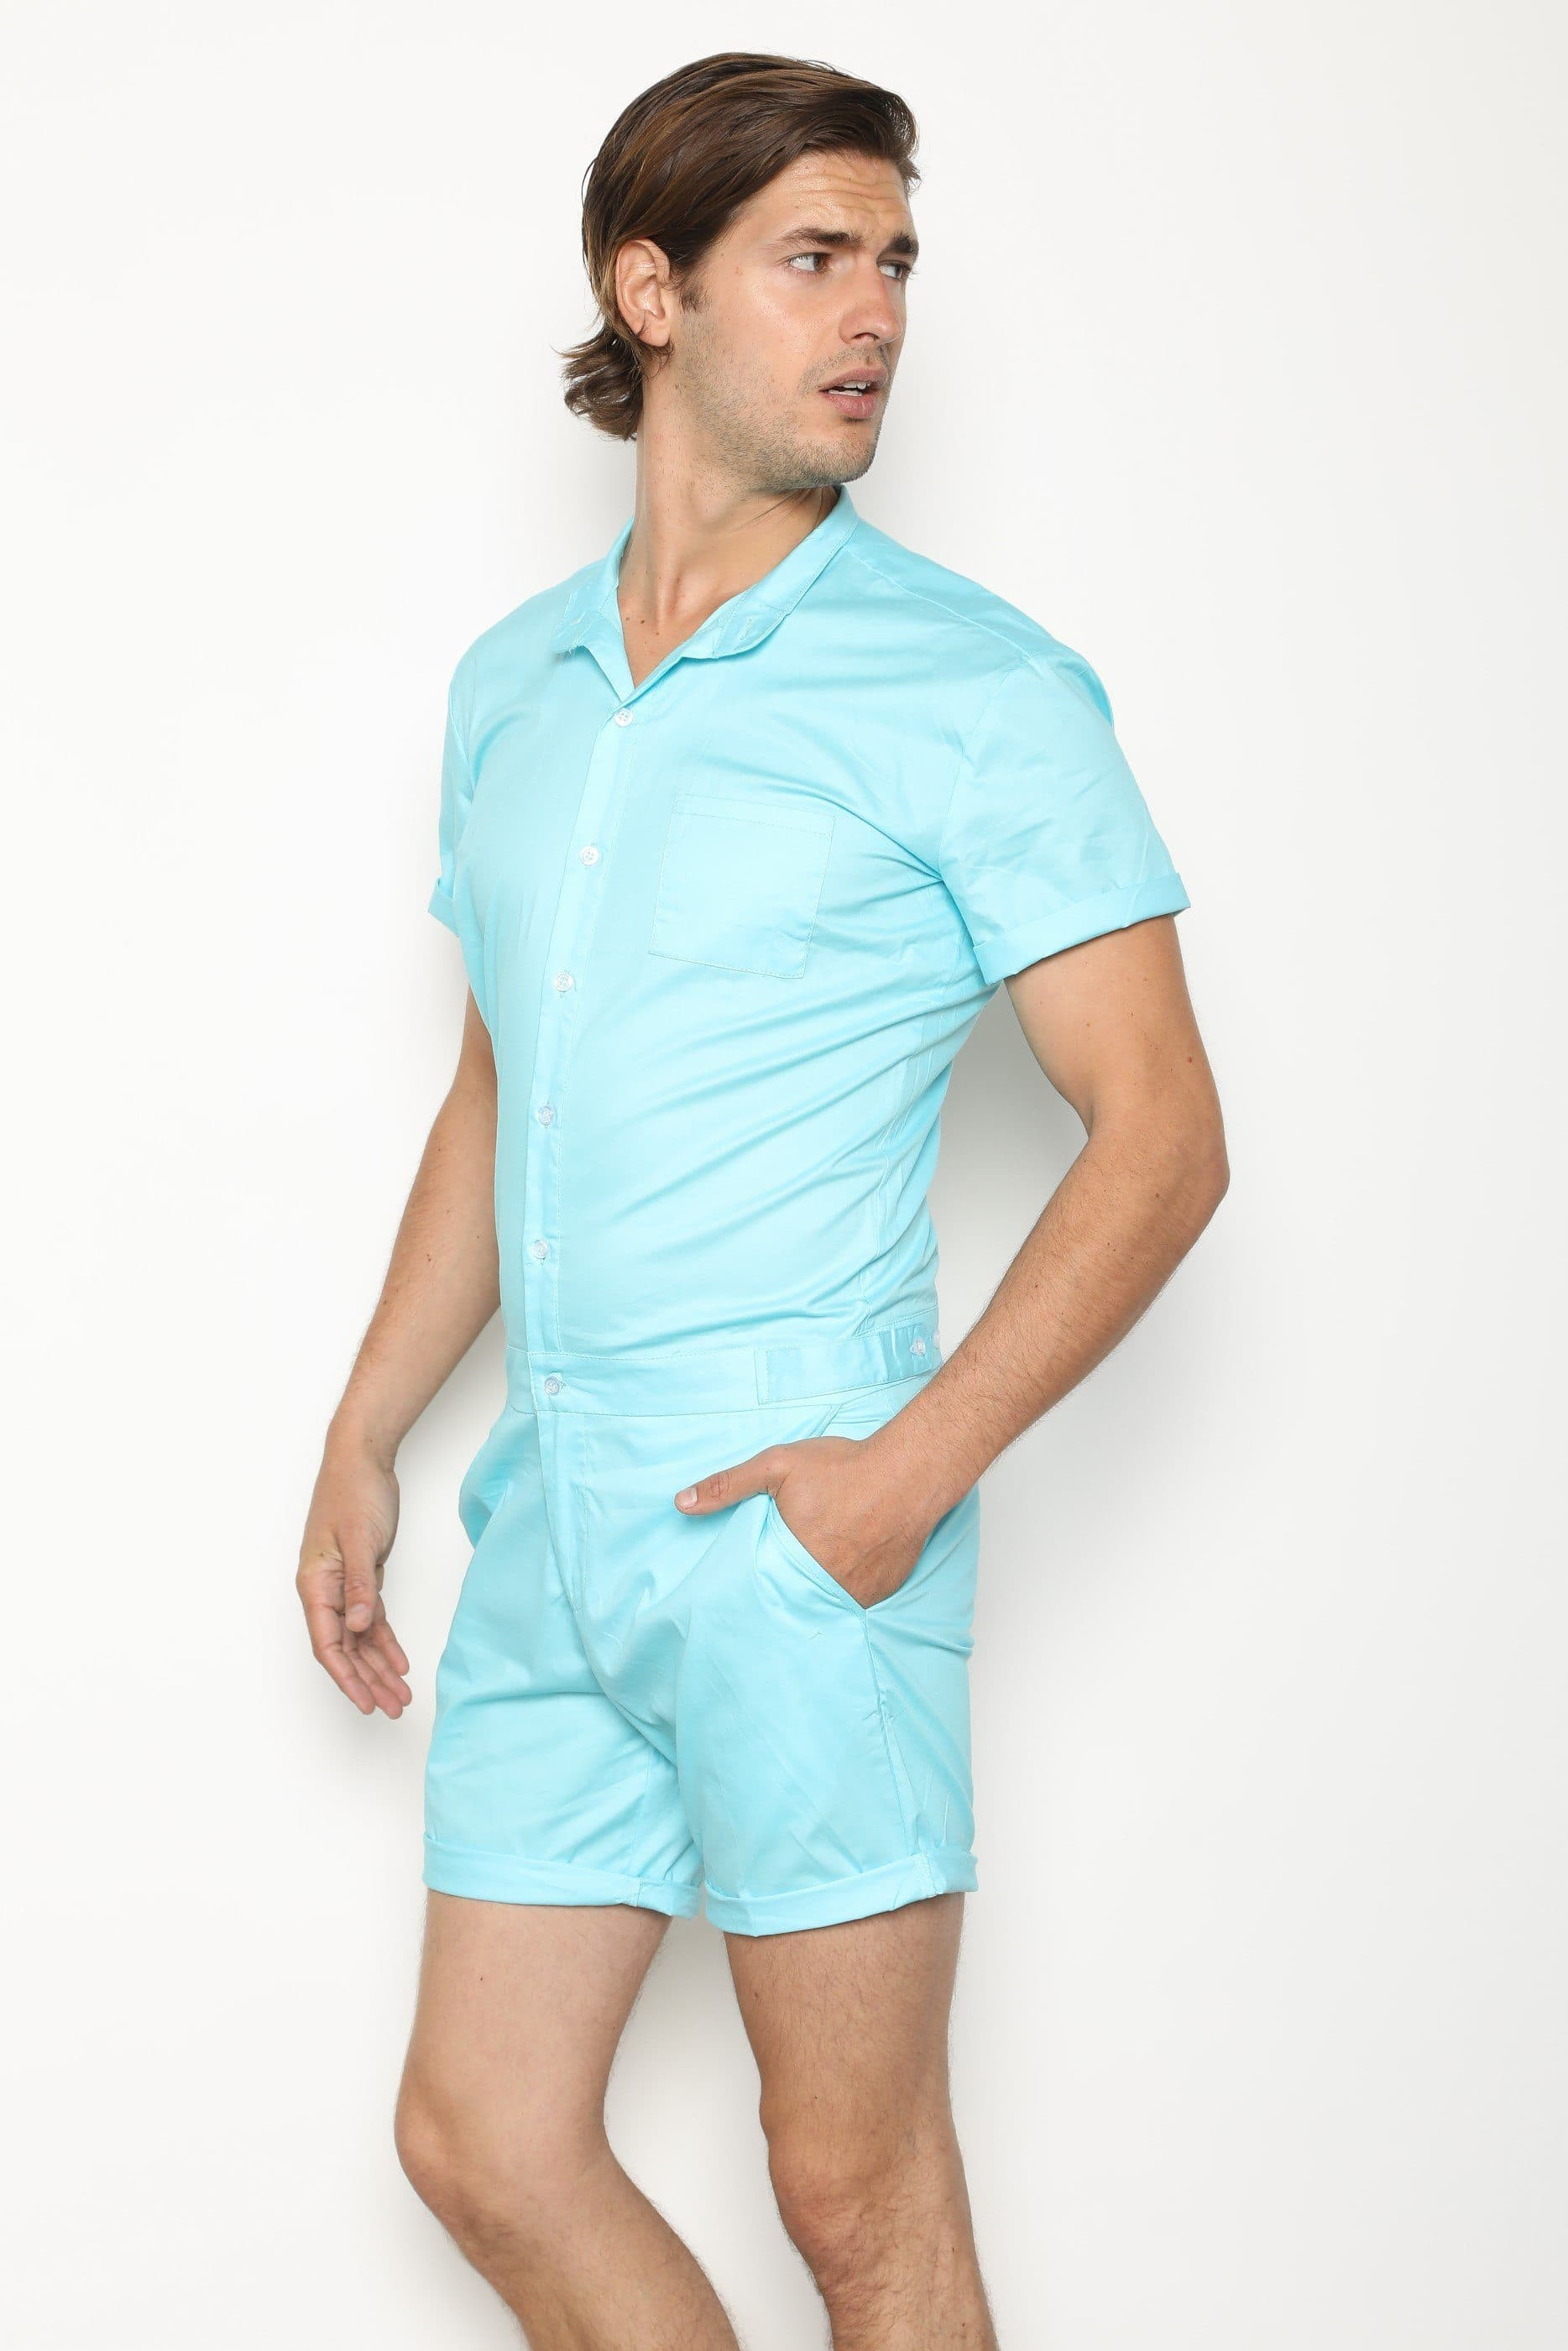 LightBlue RomperJack - RomperJack, Men's Romper - Male Romper